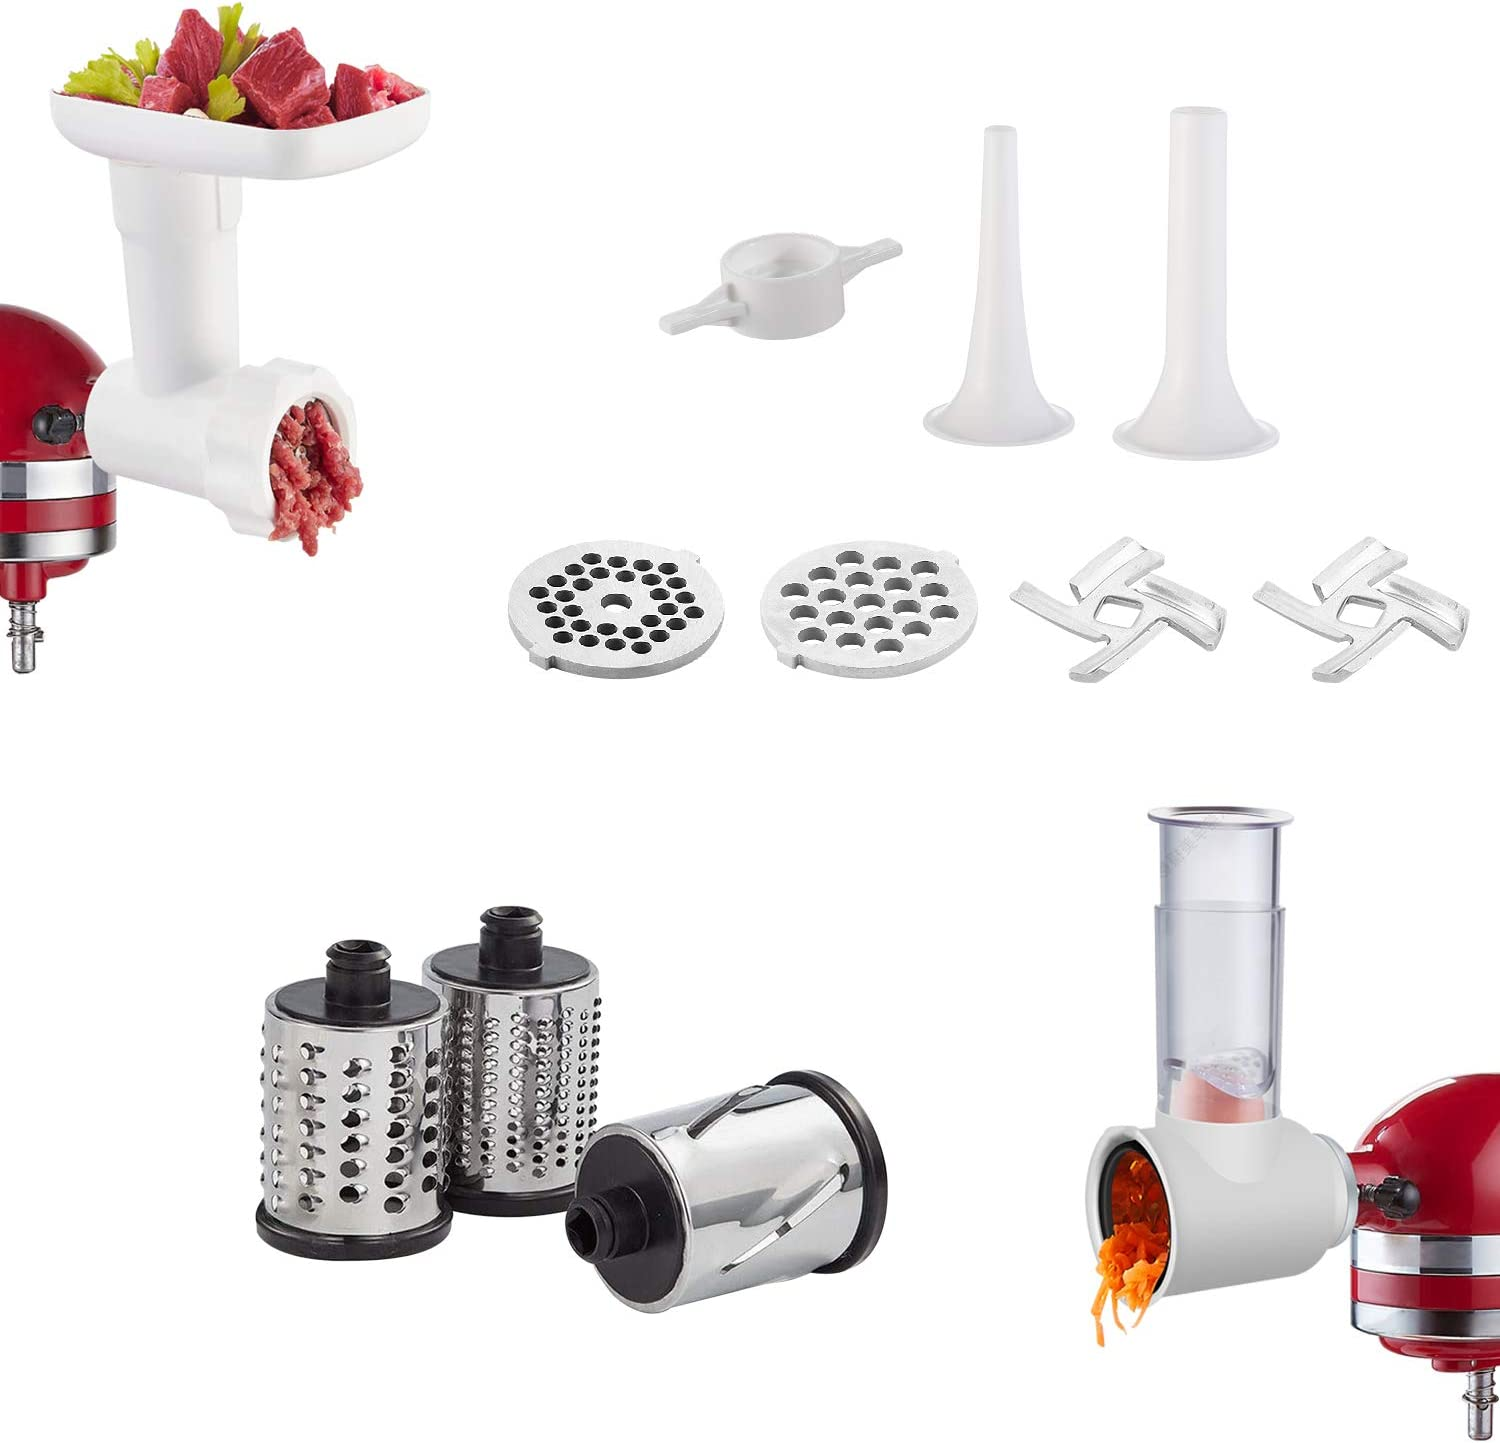 2 in 1 Slicer/Shredder & Food Grinder Attachment for KitchenAid Stand Mixers, Durable Accessory Set with 2 Sausage Stuffer Tubes, 3 Cutting Blades, 2 Grinding Plates, 2 Blades (White)